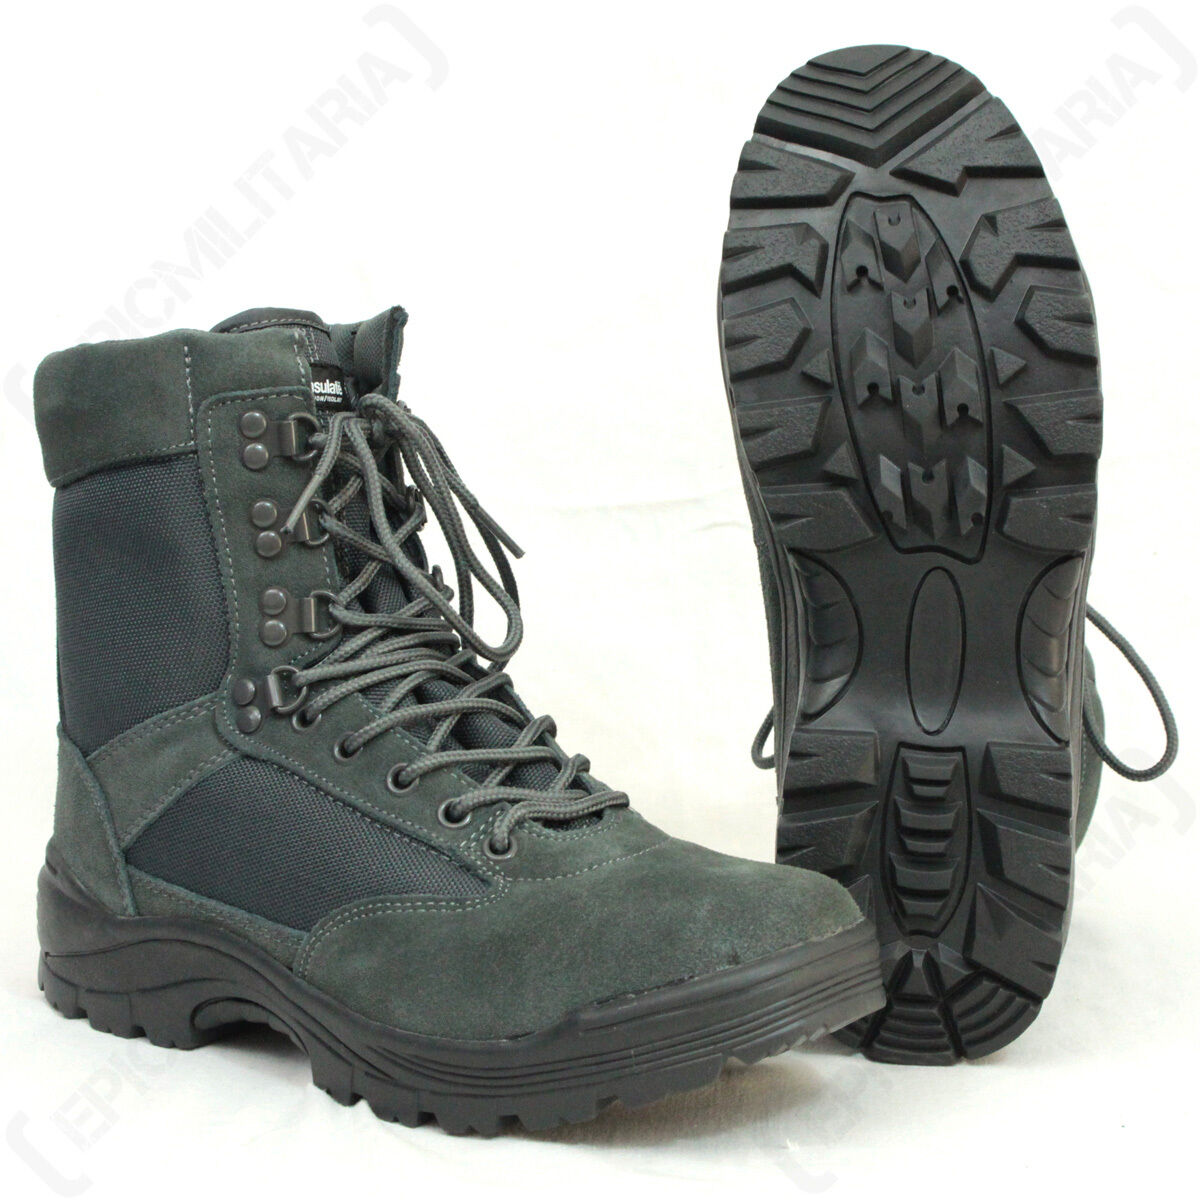 Urban Grey Tactical Army Boot with YKK Zipper - Boots Shoes Military Outdoor New